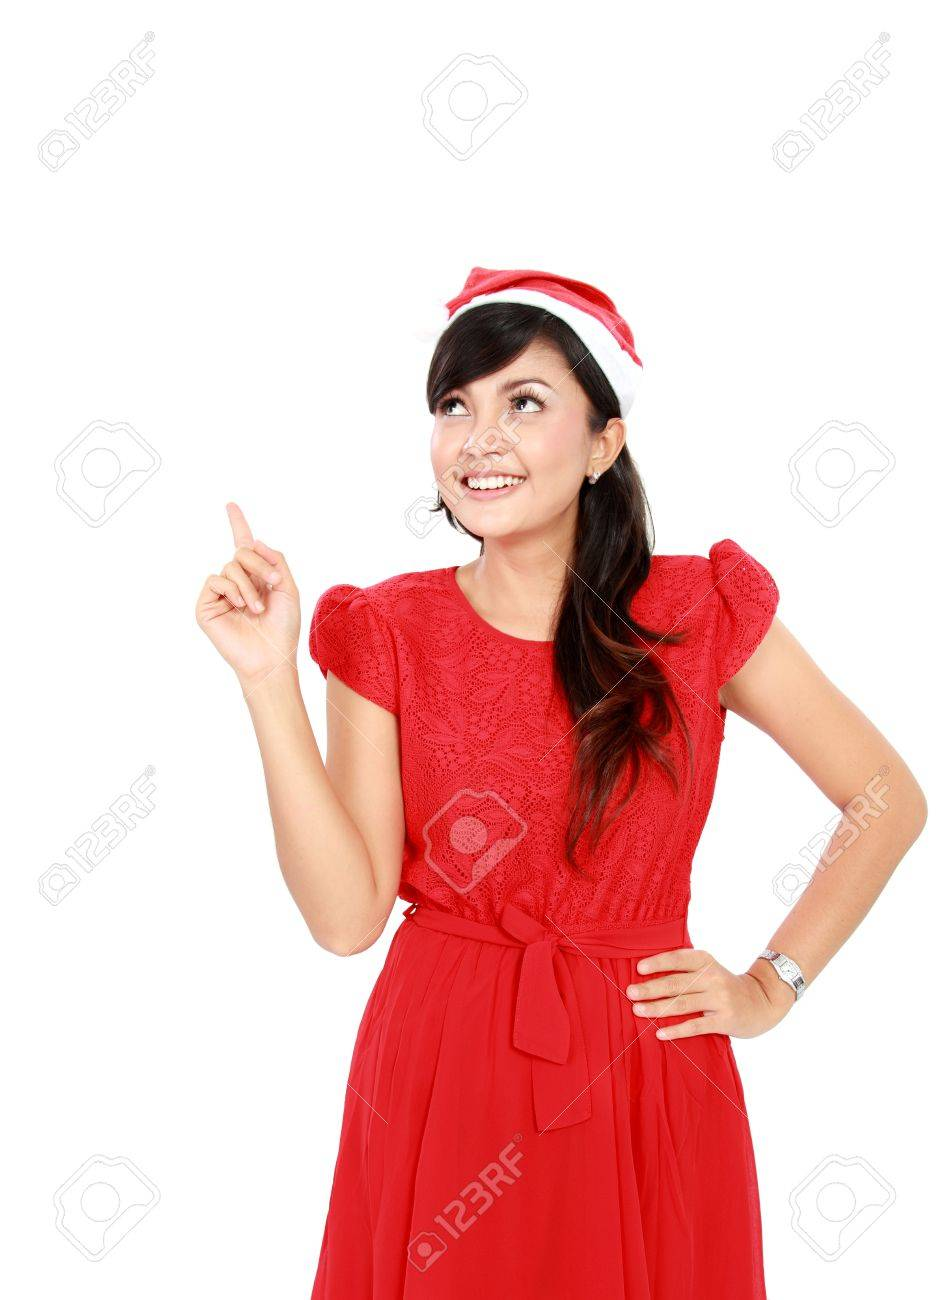 Woman with santa hat in red dress pointing up - isolated on white background. Stock Photo - 16800546